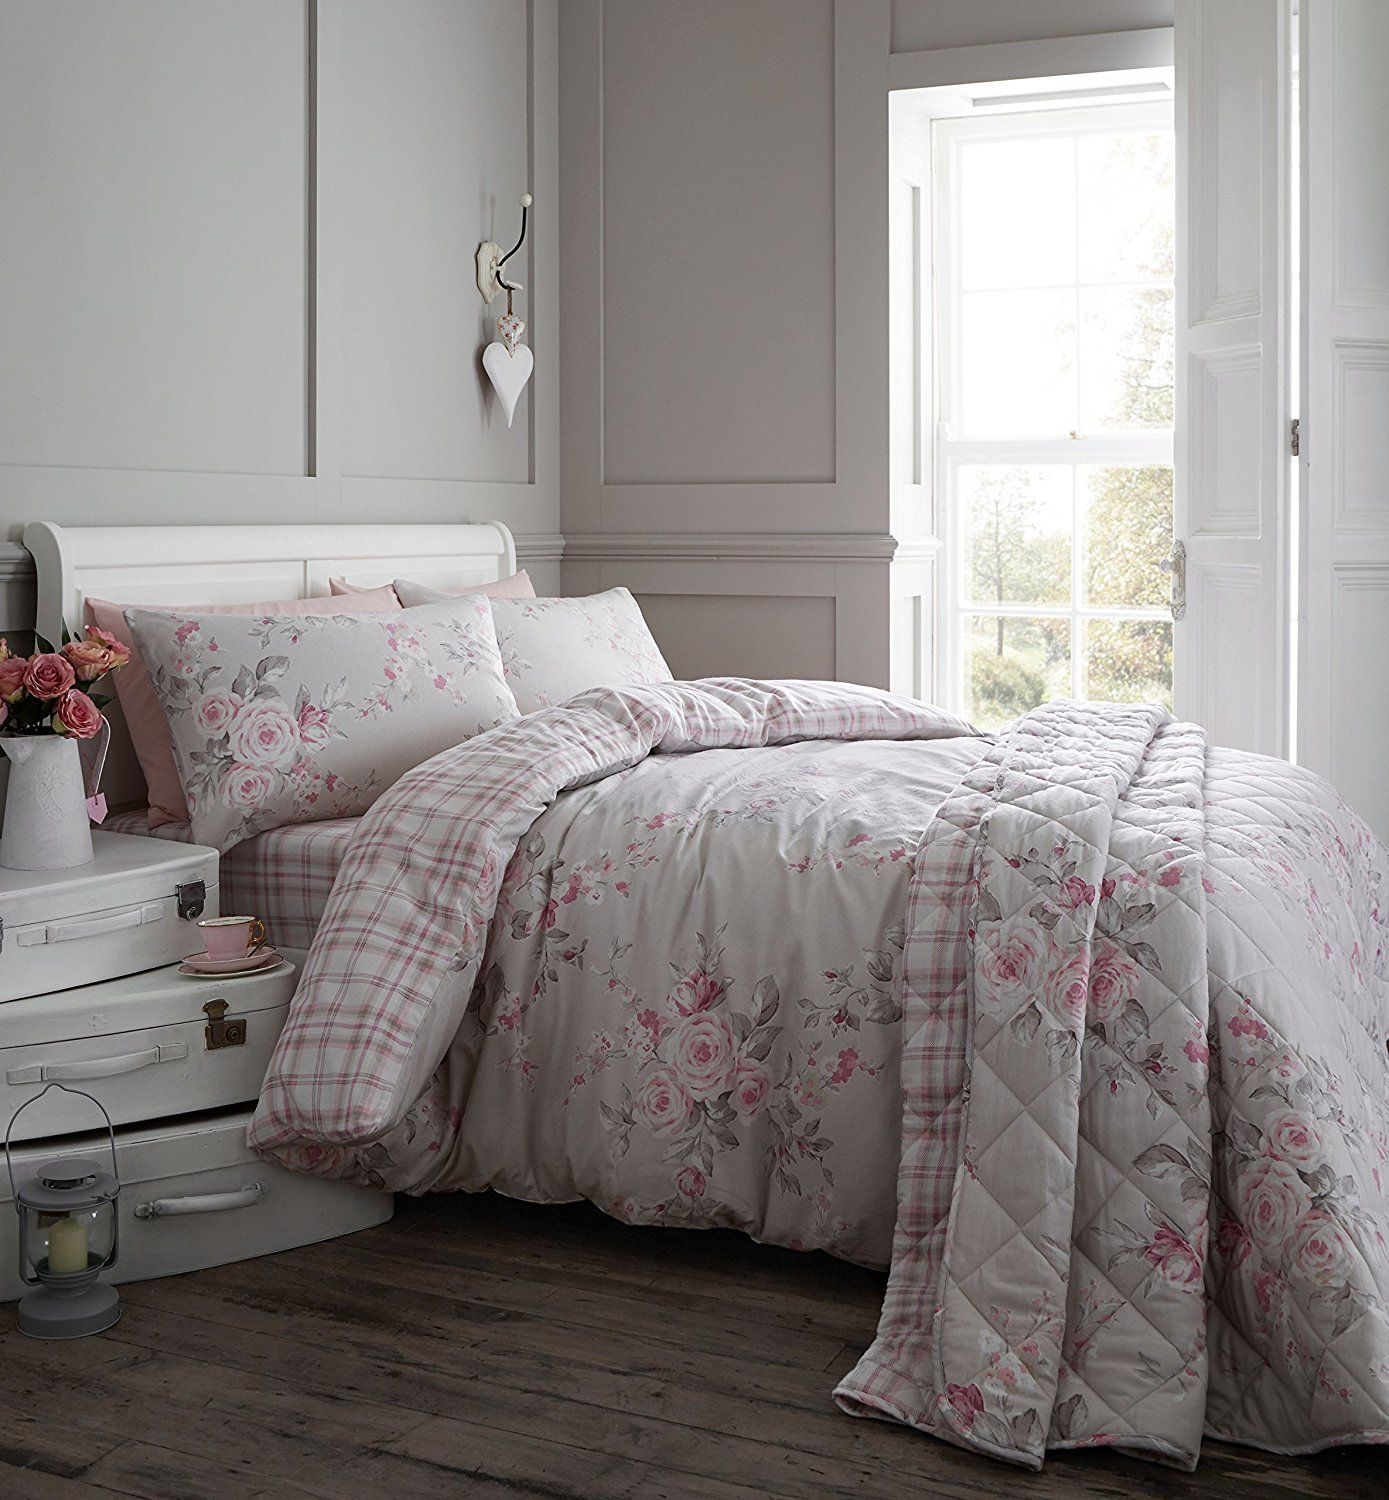 Best 6 Quick Easy Ways To Spruce Up Your Bedroom This Spring With Love From Lou With Pictures